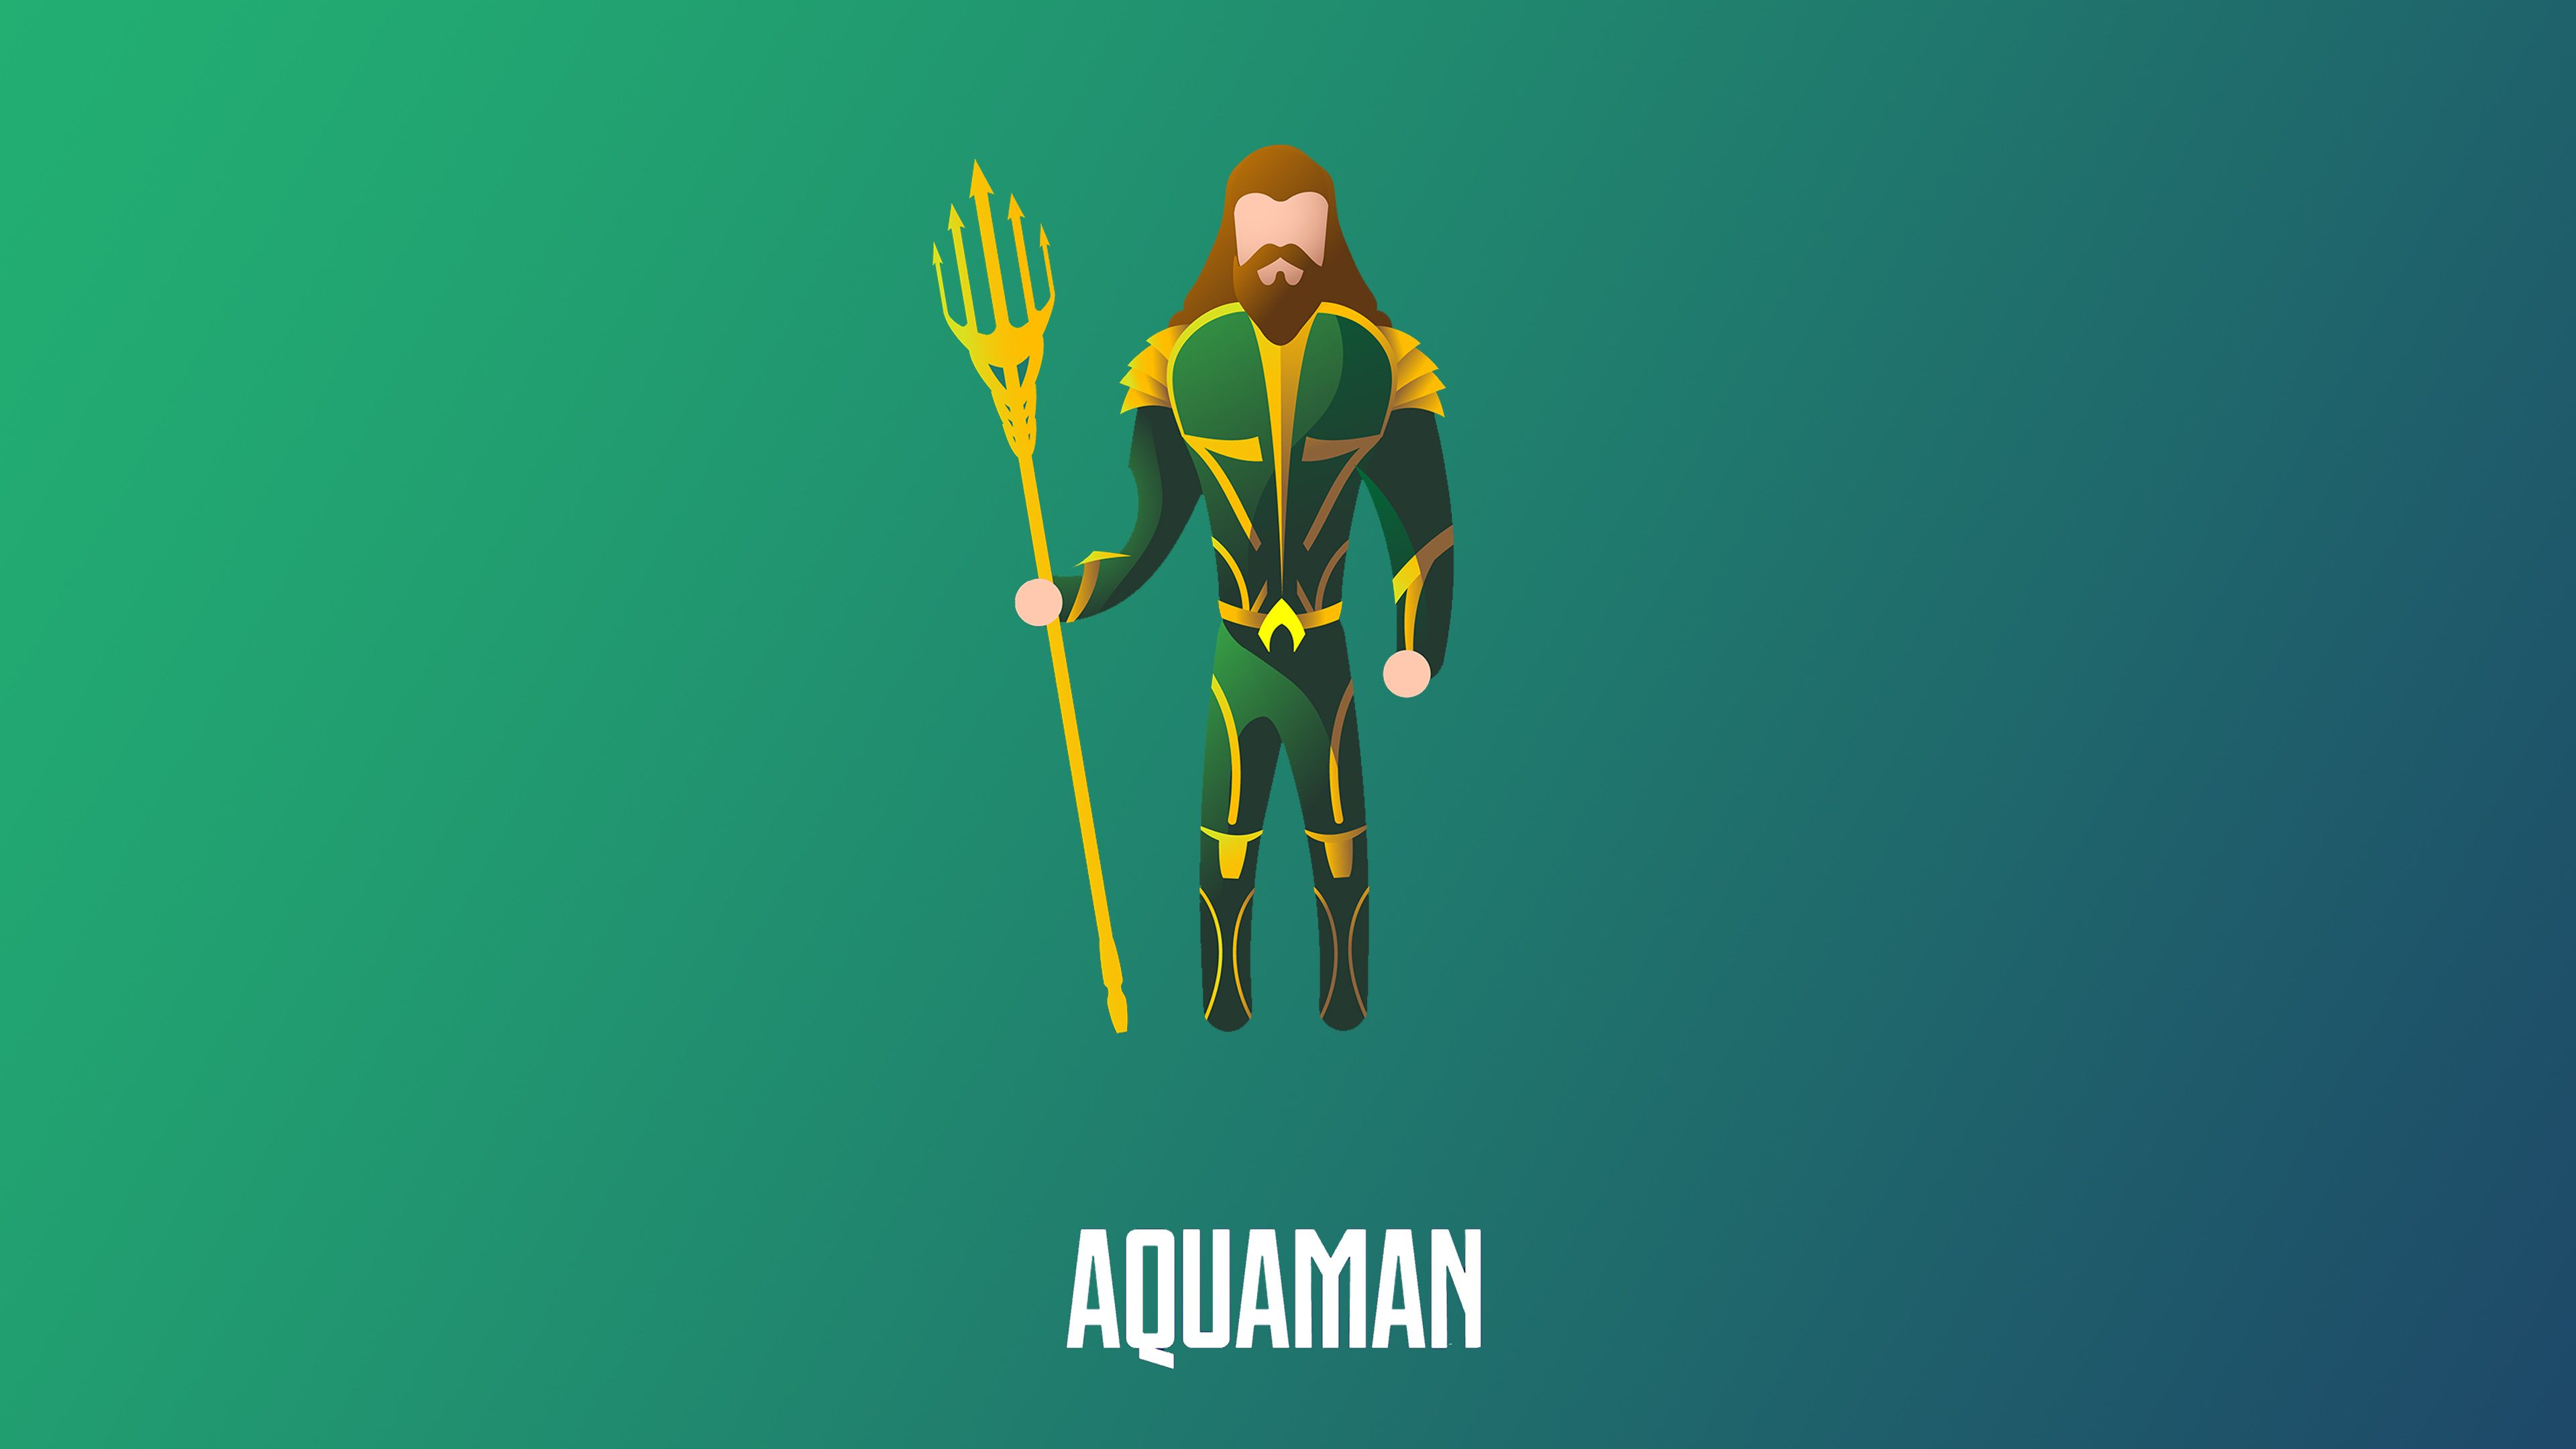 Aquaman Illustration 4k Superheroes Wallpapers Minimalist